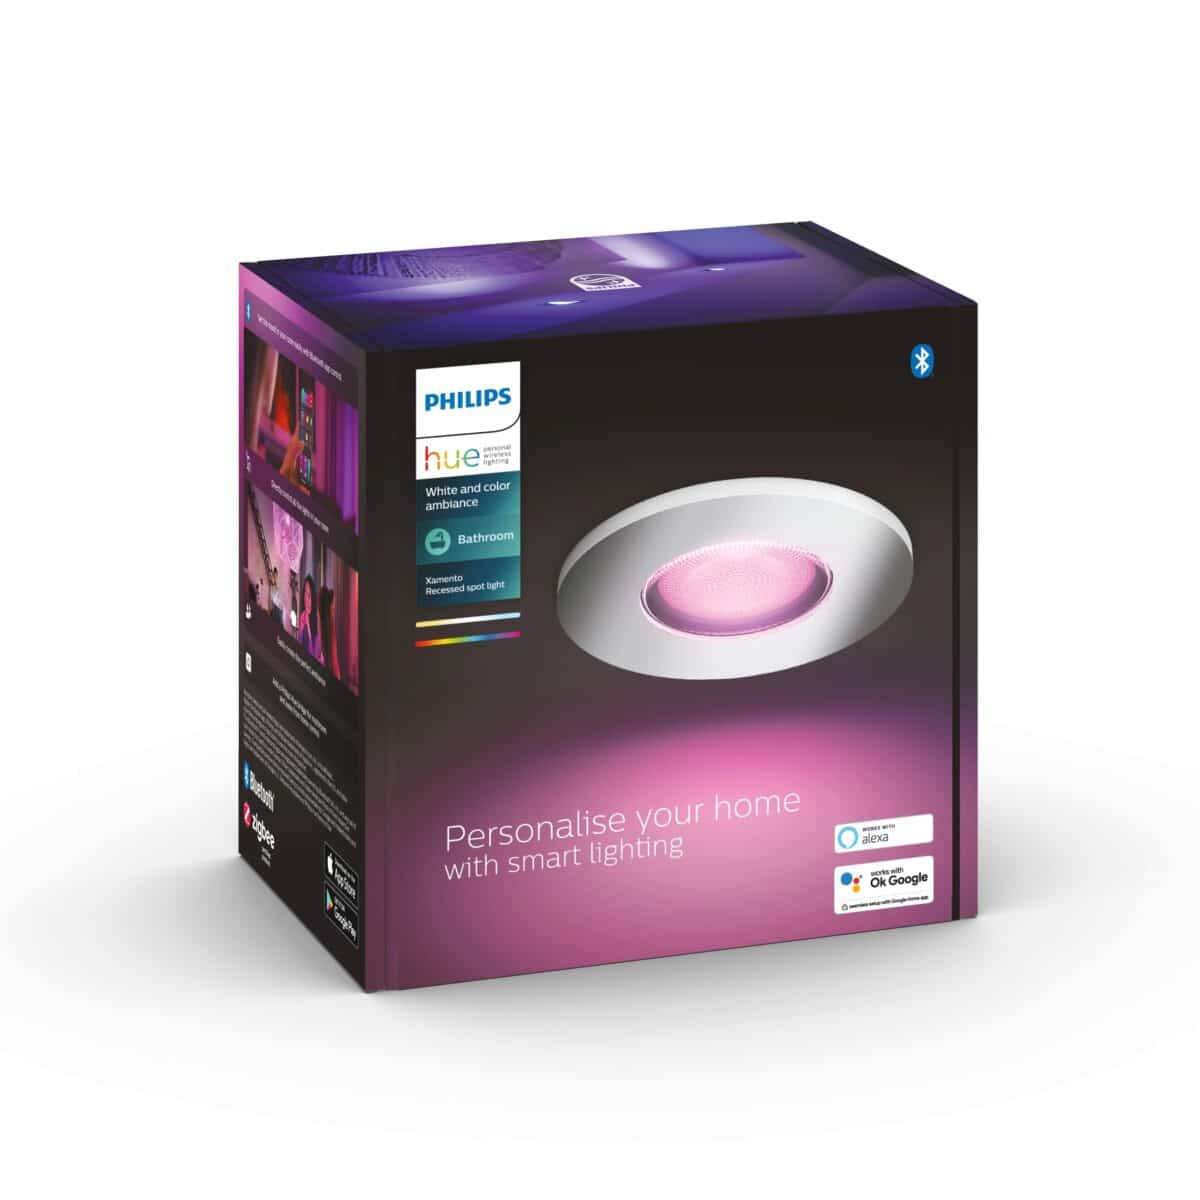 Philips Hue Xamento recessed spots product